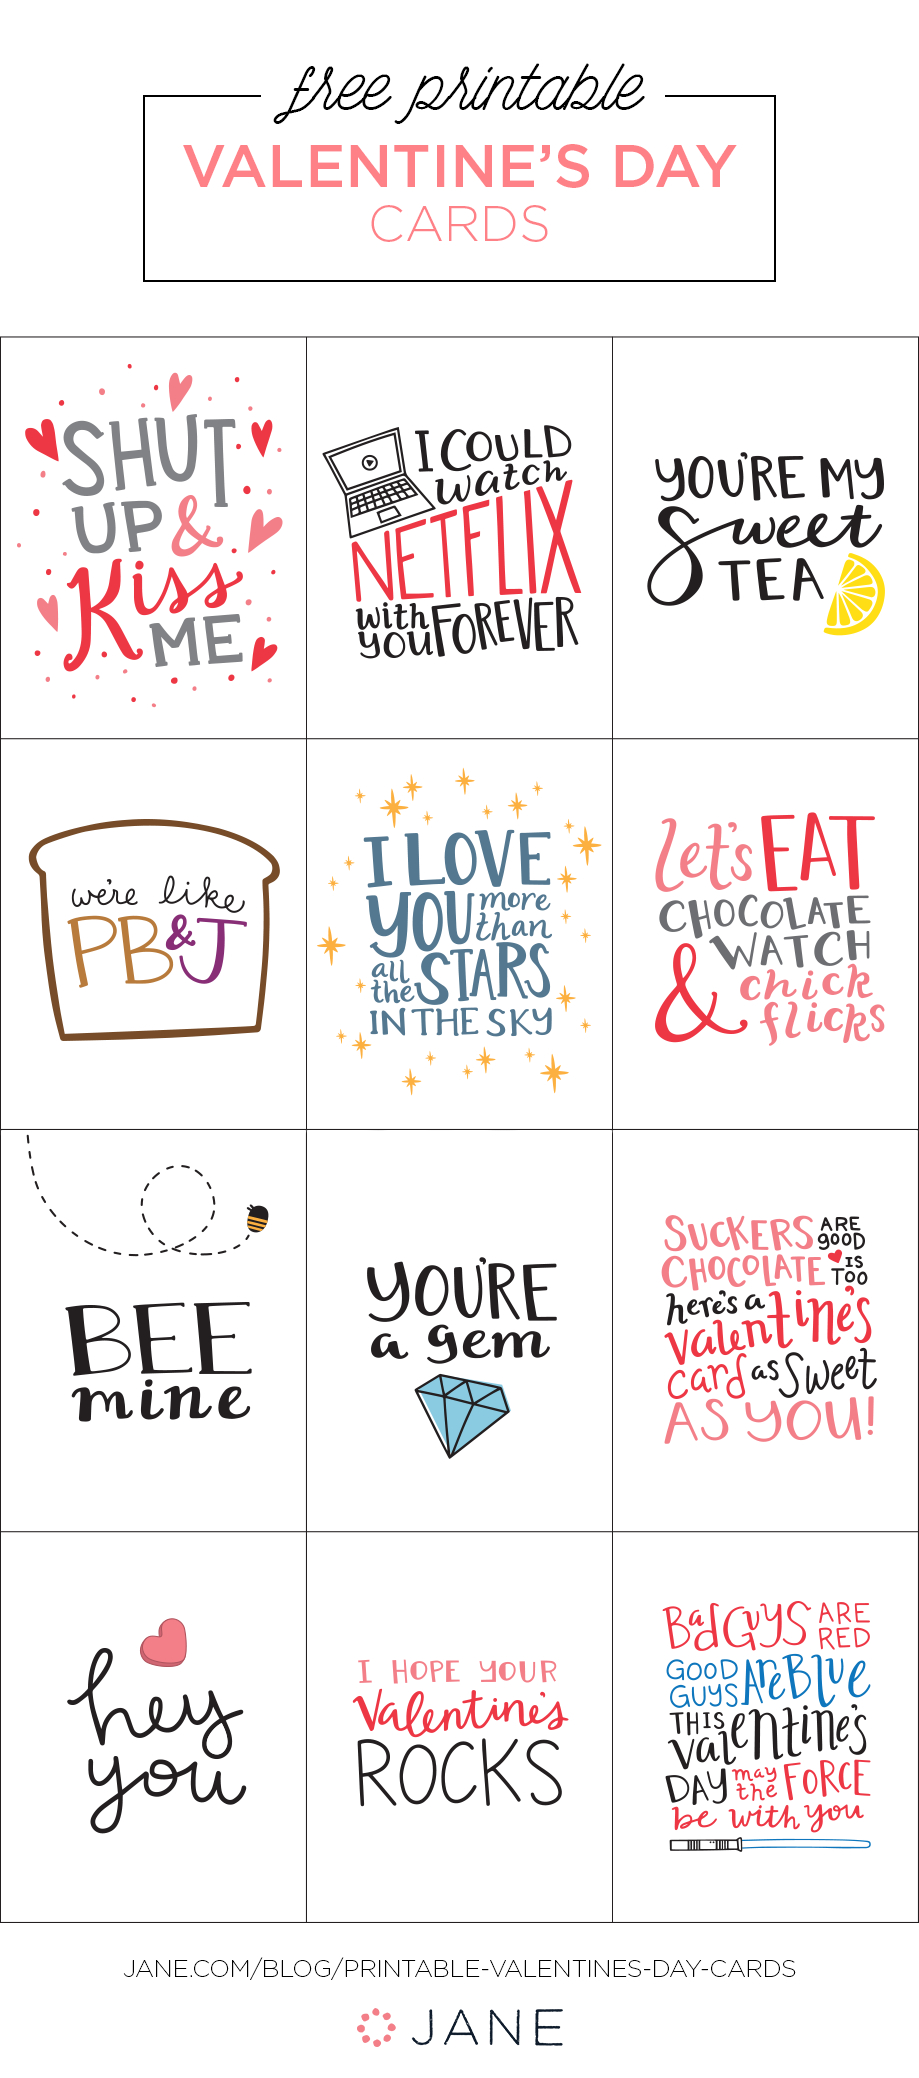 50+ Easy Diy And Printable Valentines | Best Of My So-Called Chaos - Free Printable Valentines Day Cards For Her